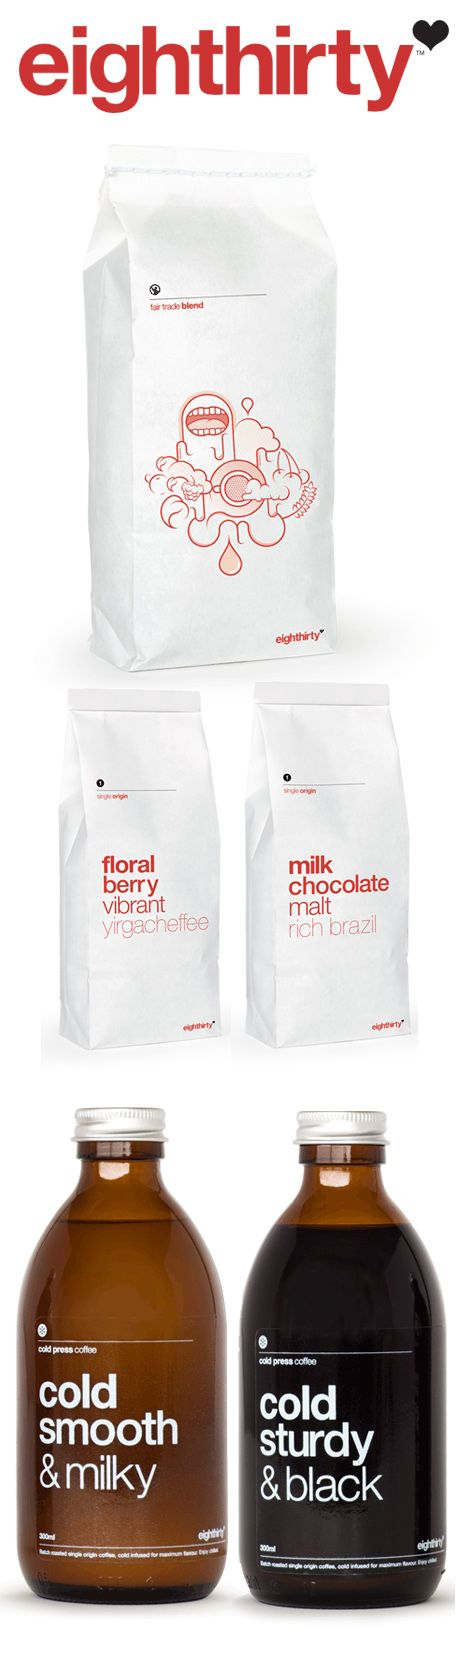 Time for a coffee break eighthirty #coffee #packaging PD